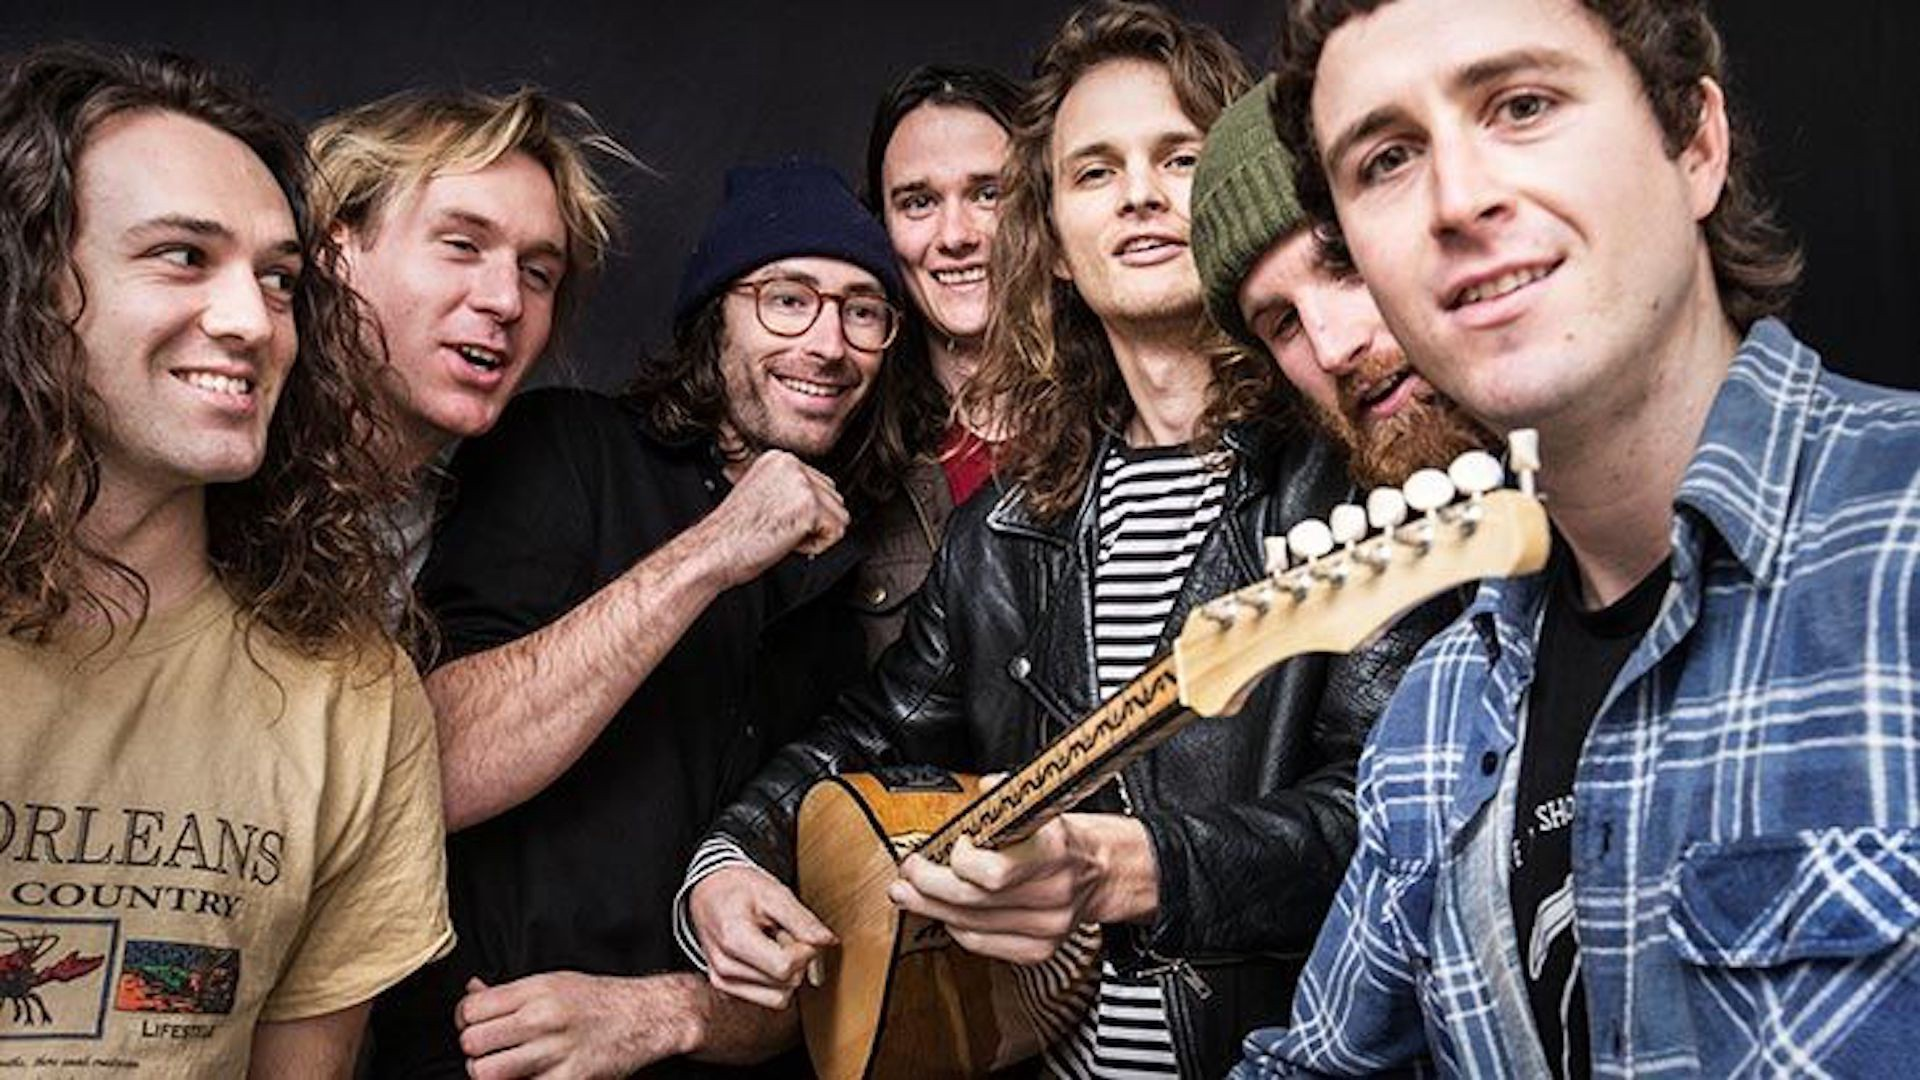 King Gizzard and the Lizard Wizard band 2020 - Music Trajectory